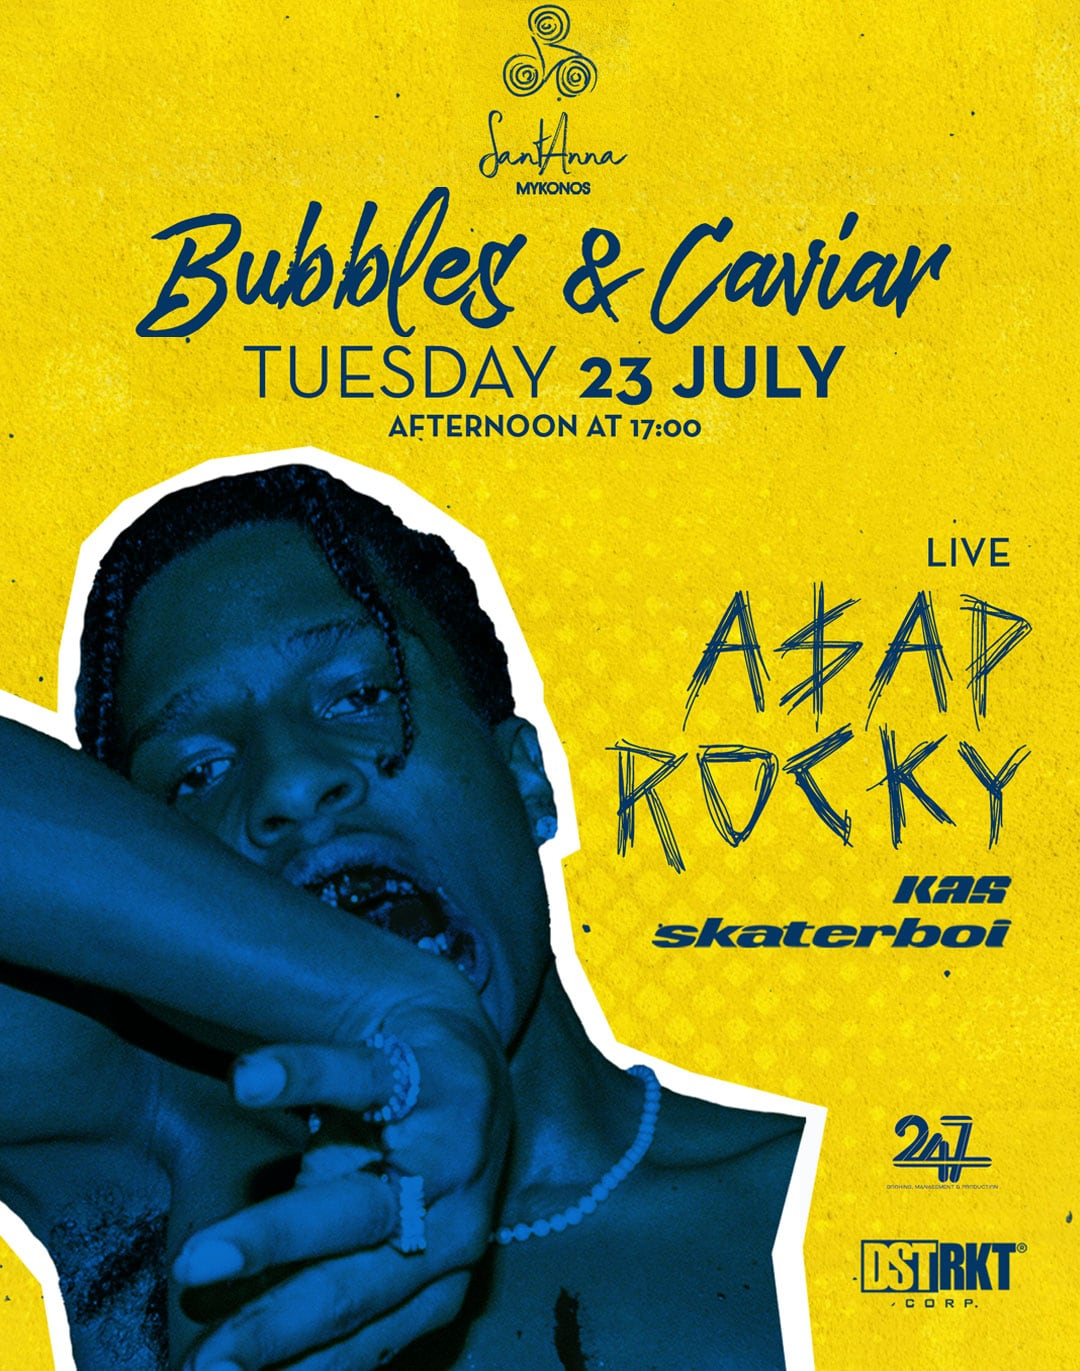 SantAnna Mykonos Bubbles & caviar Live Asap Rocky party